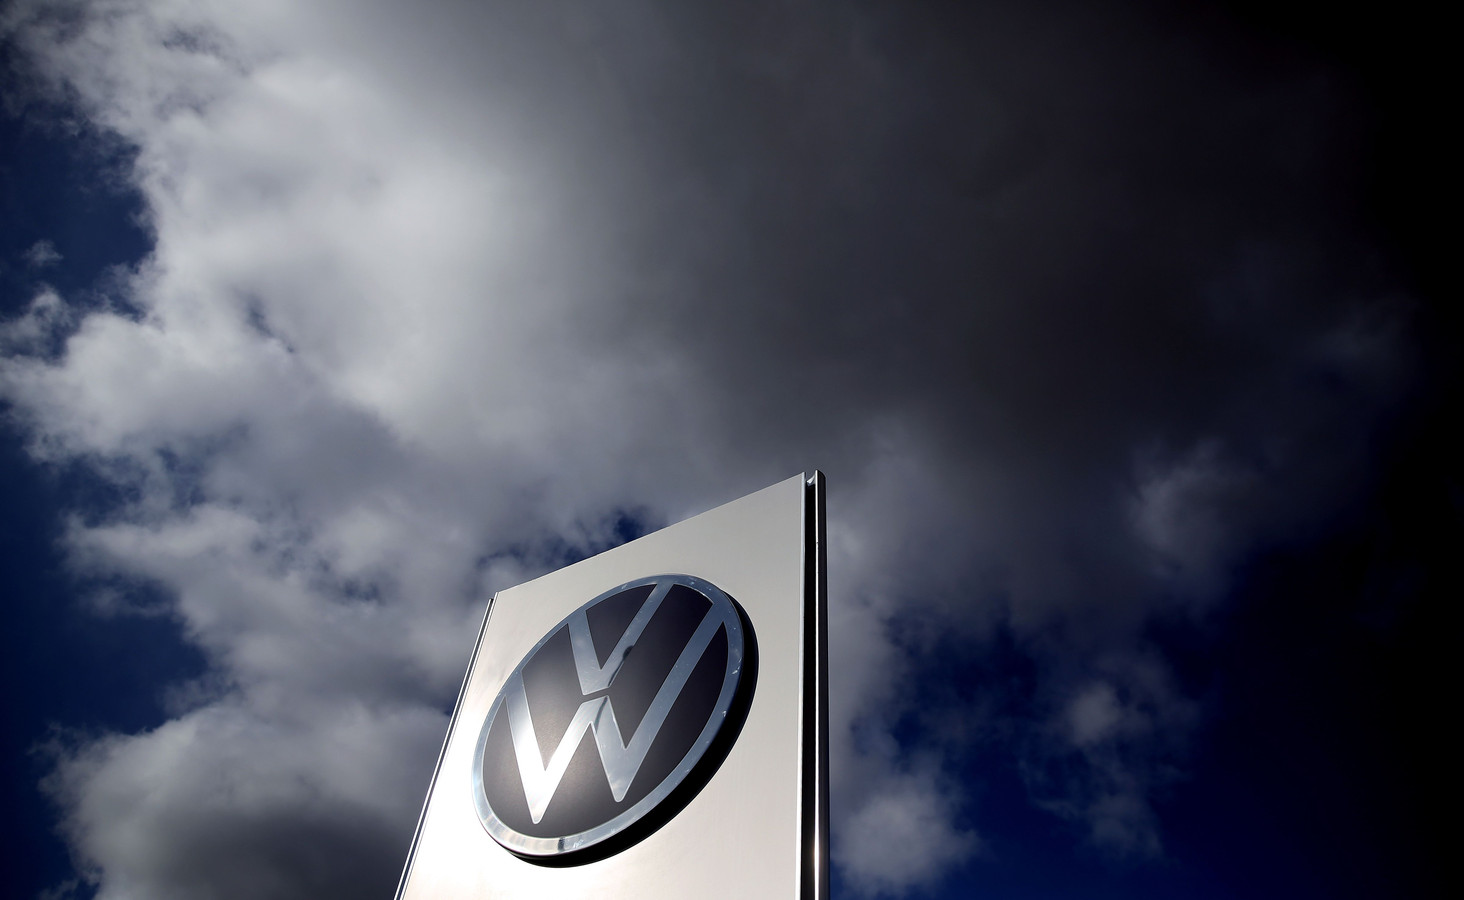 """(FILES) In this file photo taken on February 28, 2020 The logo of German car maker Volkswagen (VW) is pictured at the company's headquarters in Wolfsburg. - German auto giant Volkswagen said on March 17, 2020 it was preparing to shutter most of its European plants, joining a slew of other carmakers as the coronavirus pandemic disrupts supply chains and sends demand plummeting. Production will be halted in Spain, Portugal and Slovakia and Italy before the end of this week,"""" CEO Herbert Diess said in a speech. (Photo by Ronny Hartmann / AFP)"""